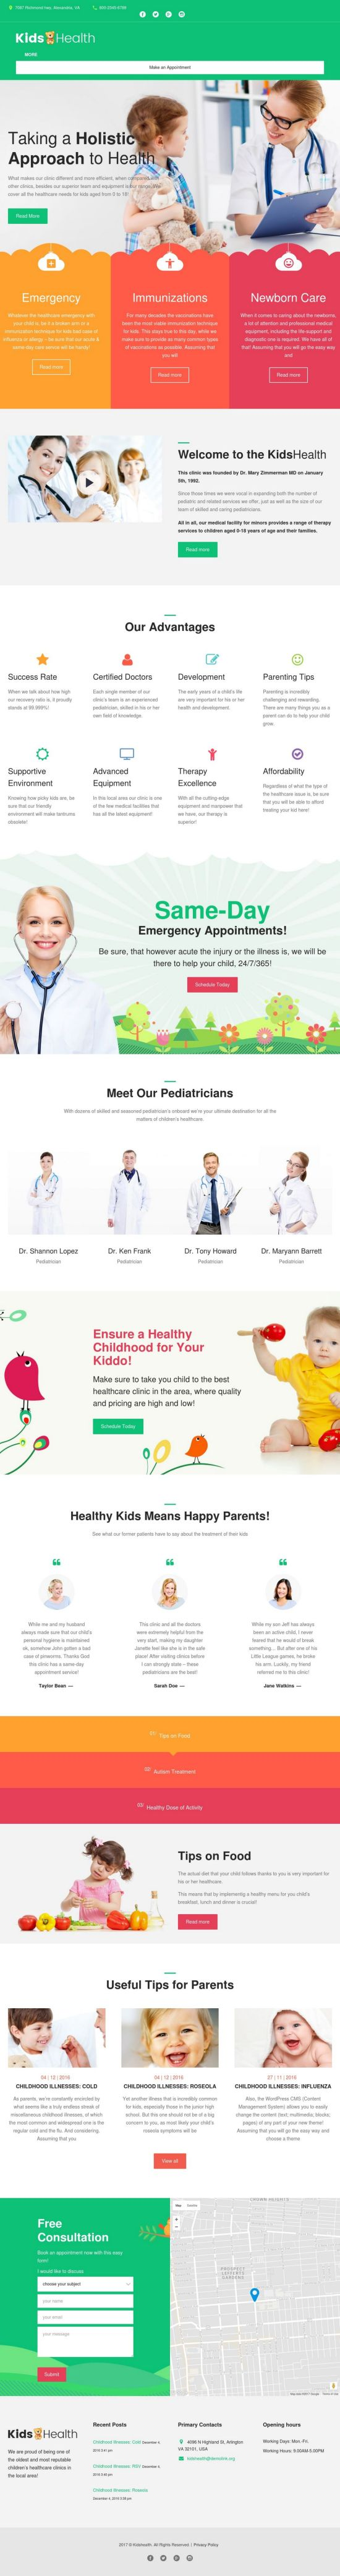 kidshealth wordpress theme templatemonster 01 - KidsHealth WordPress Theme